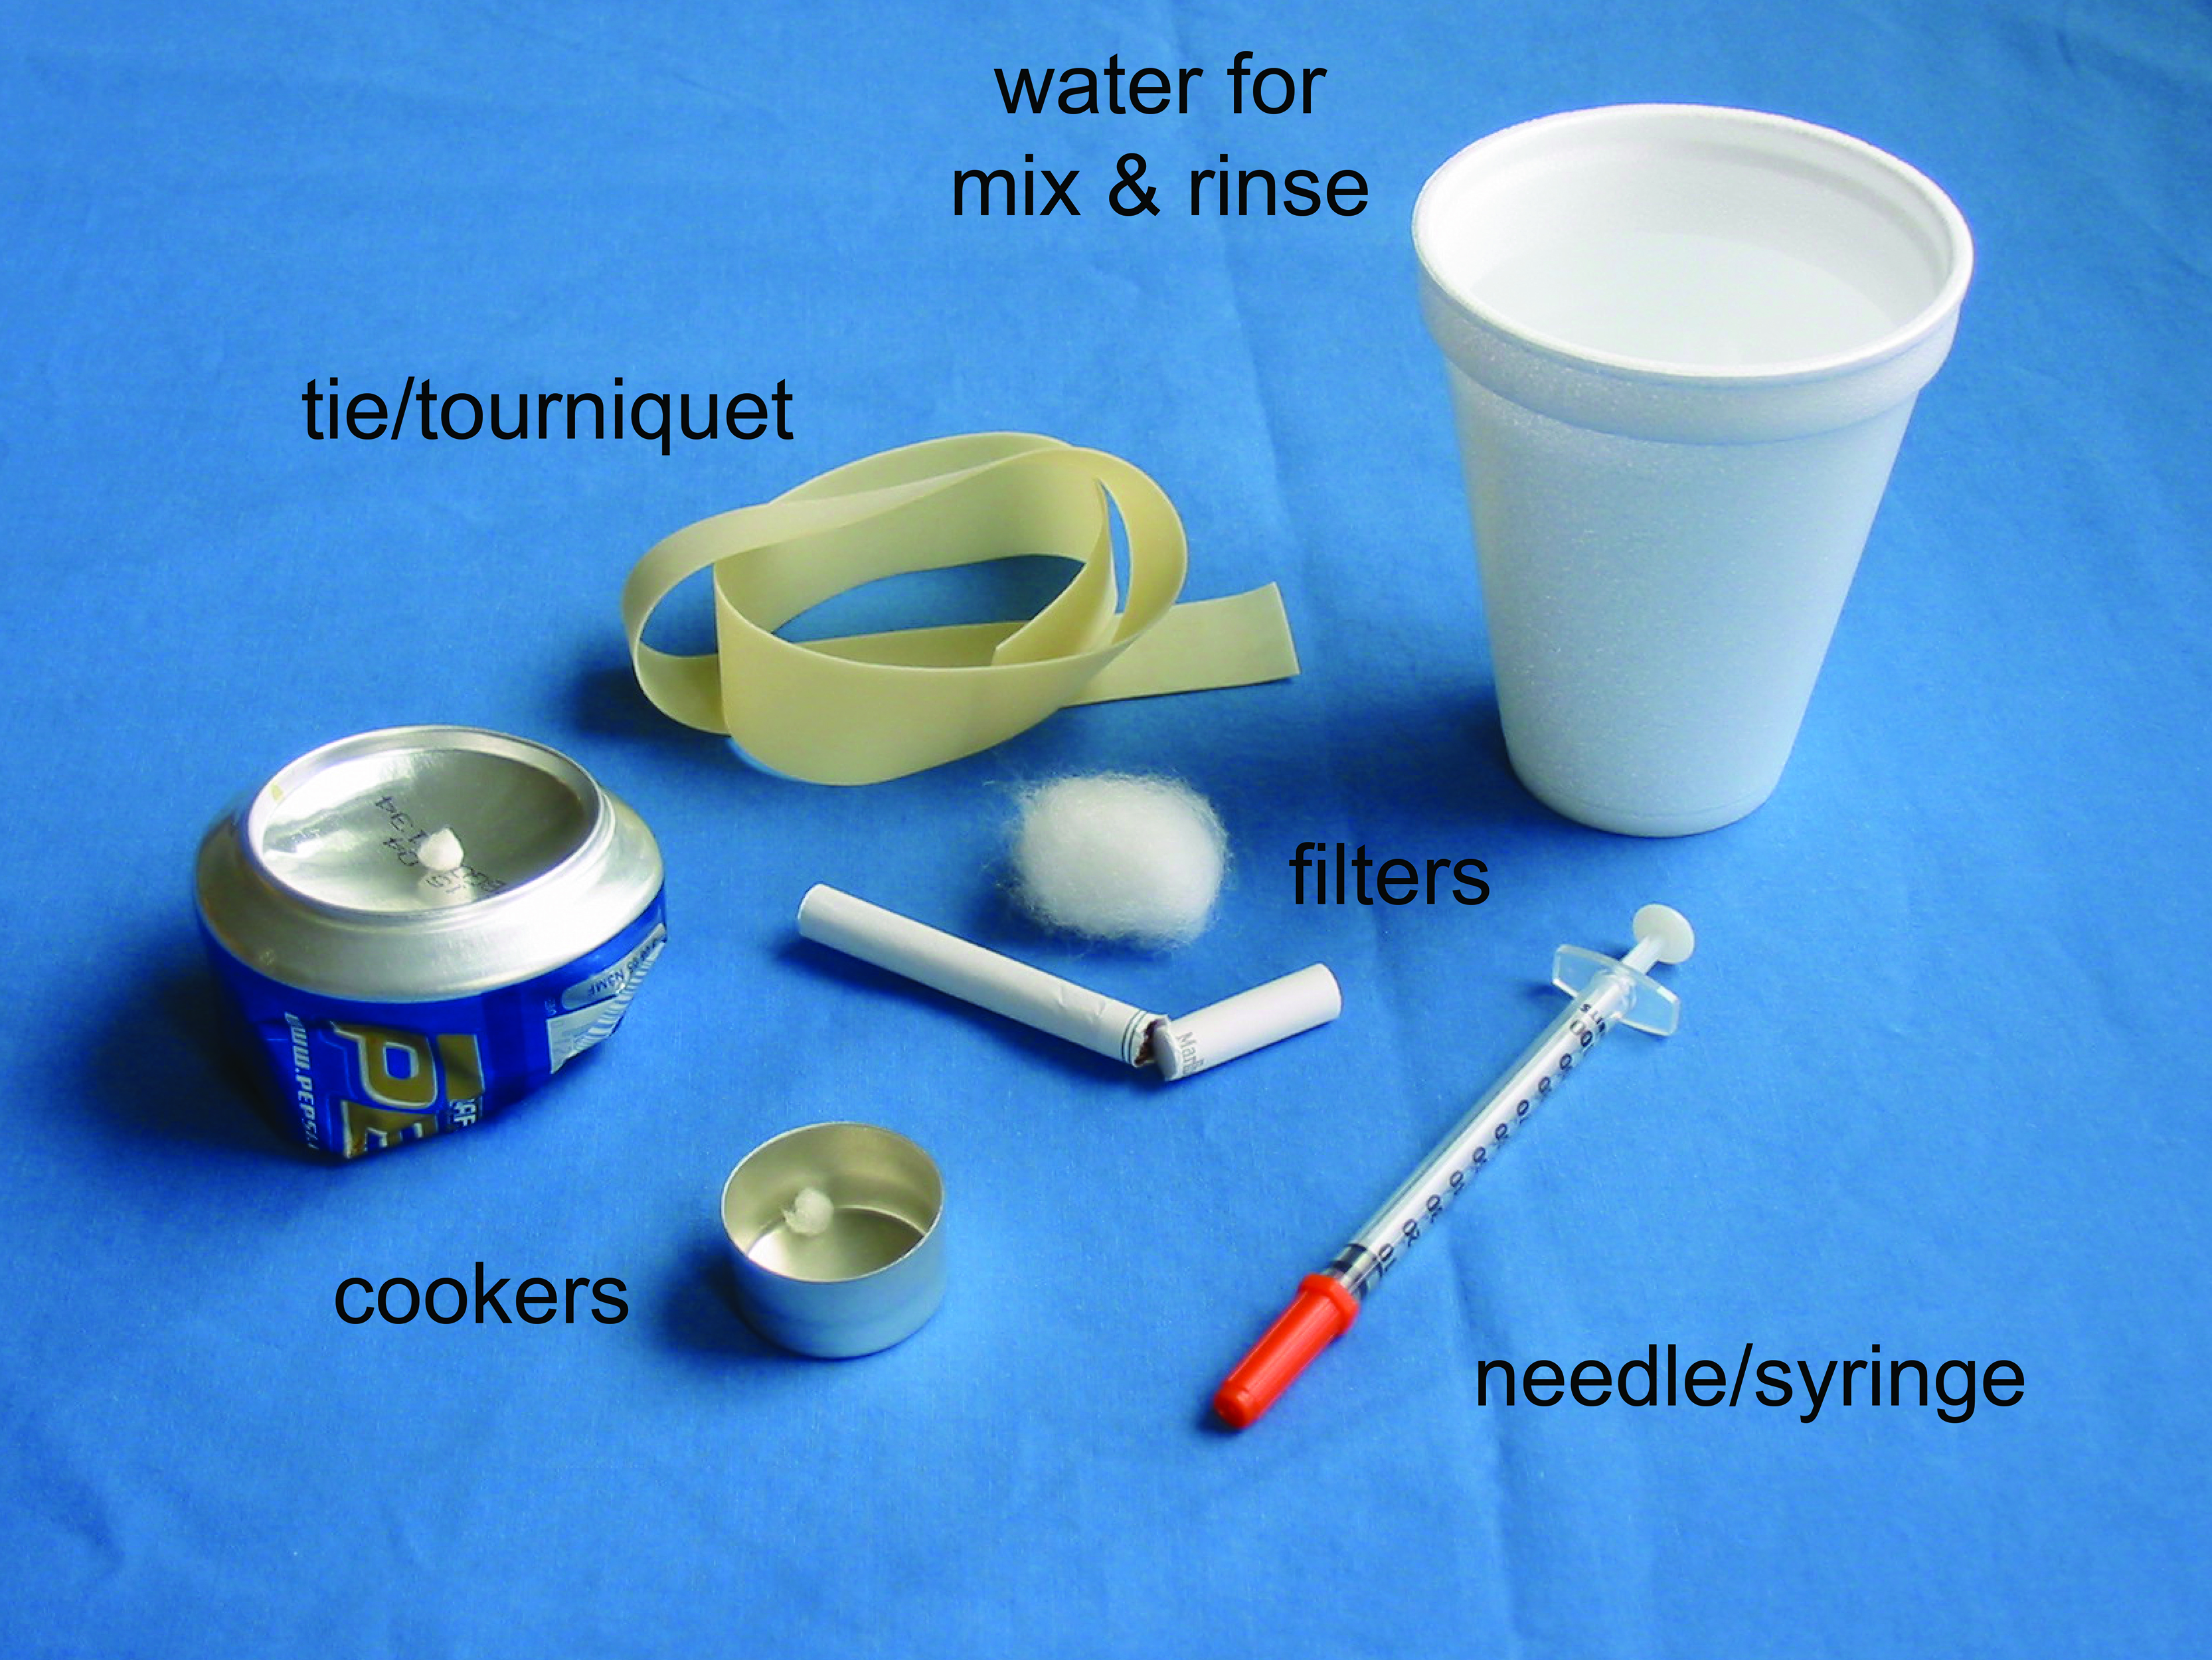 Equipment used by injecting drug users.